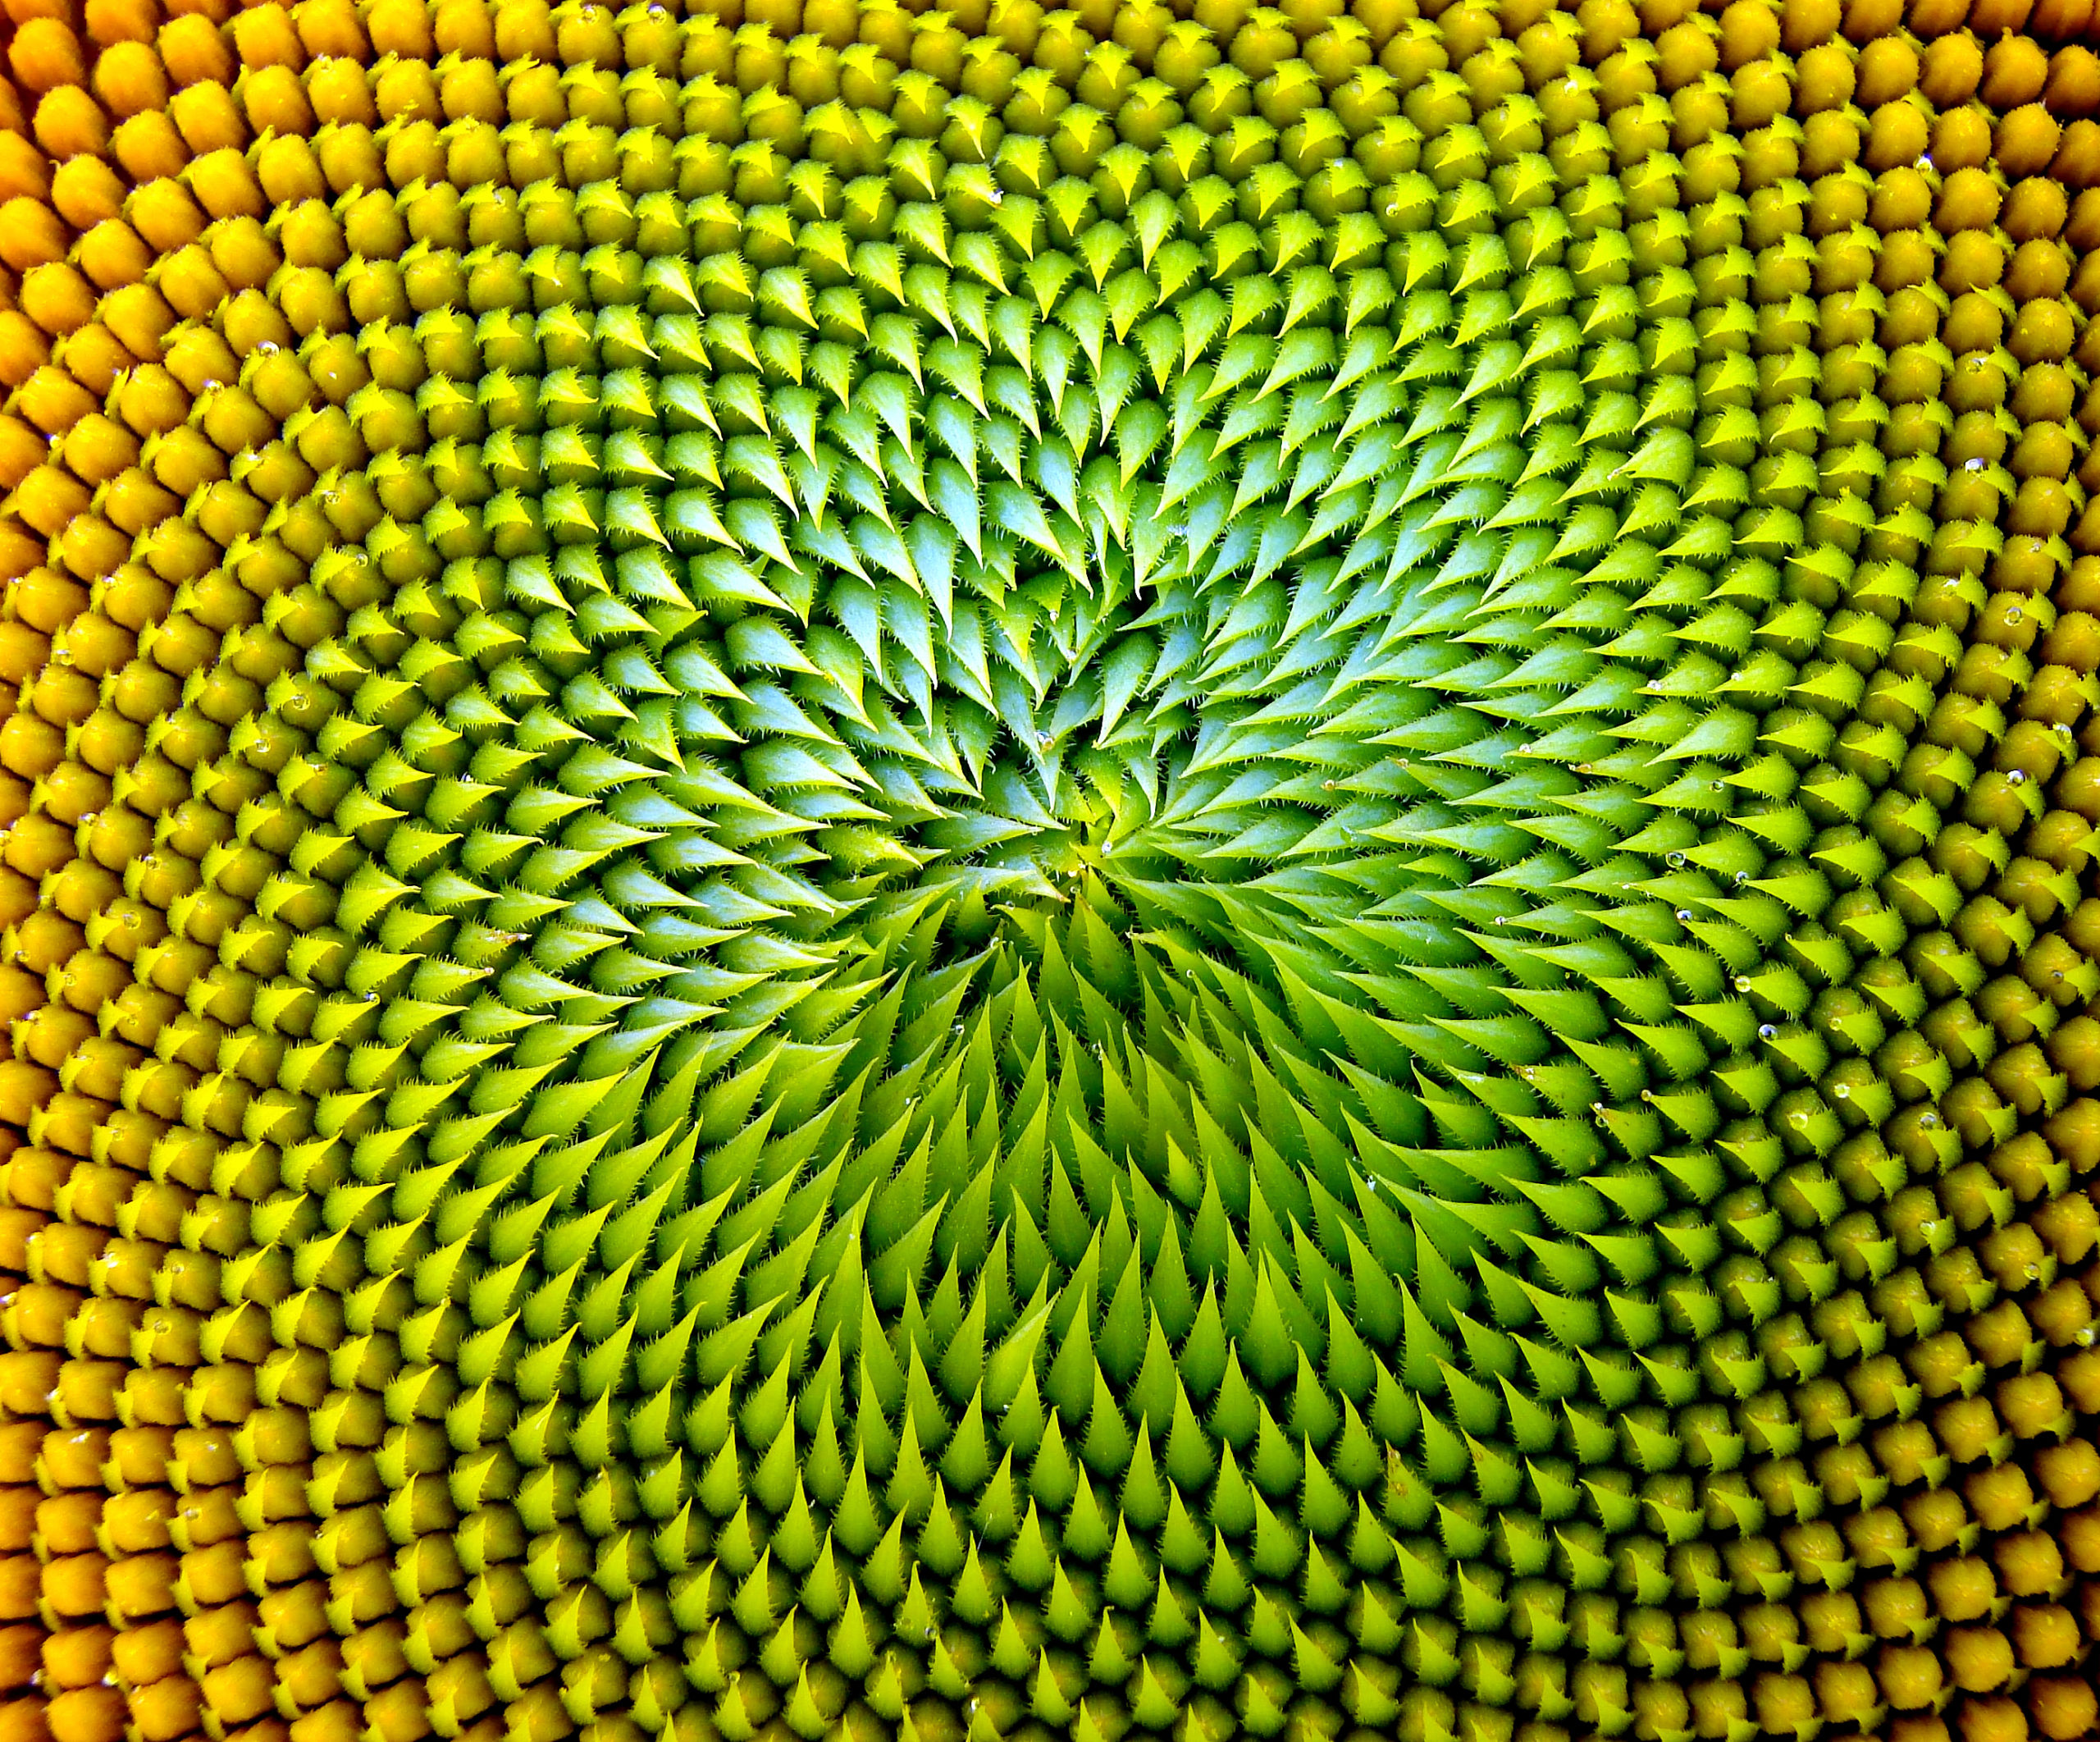 patterns in nature, benfords law